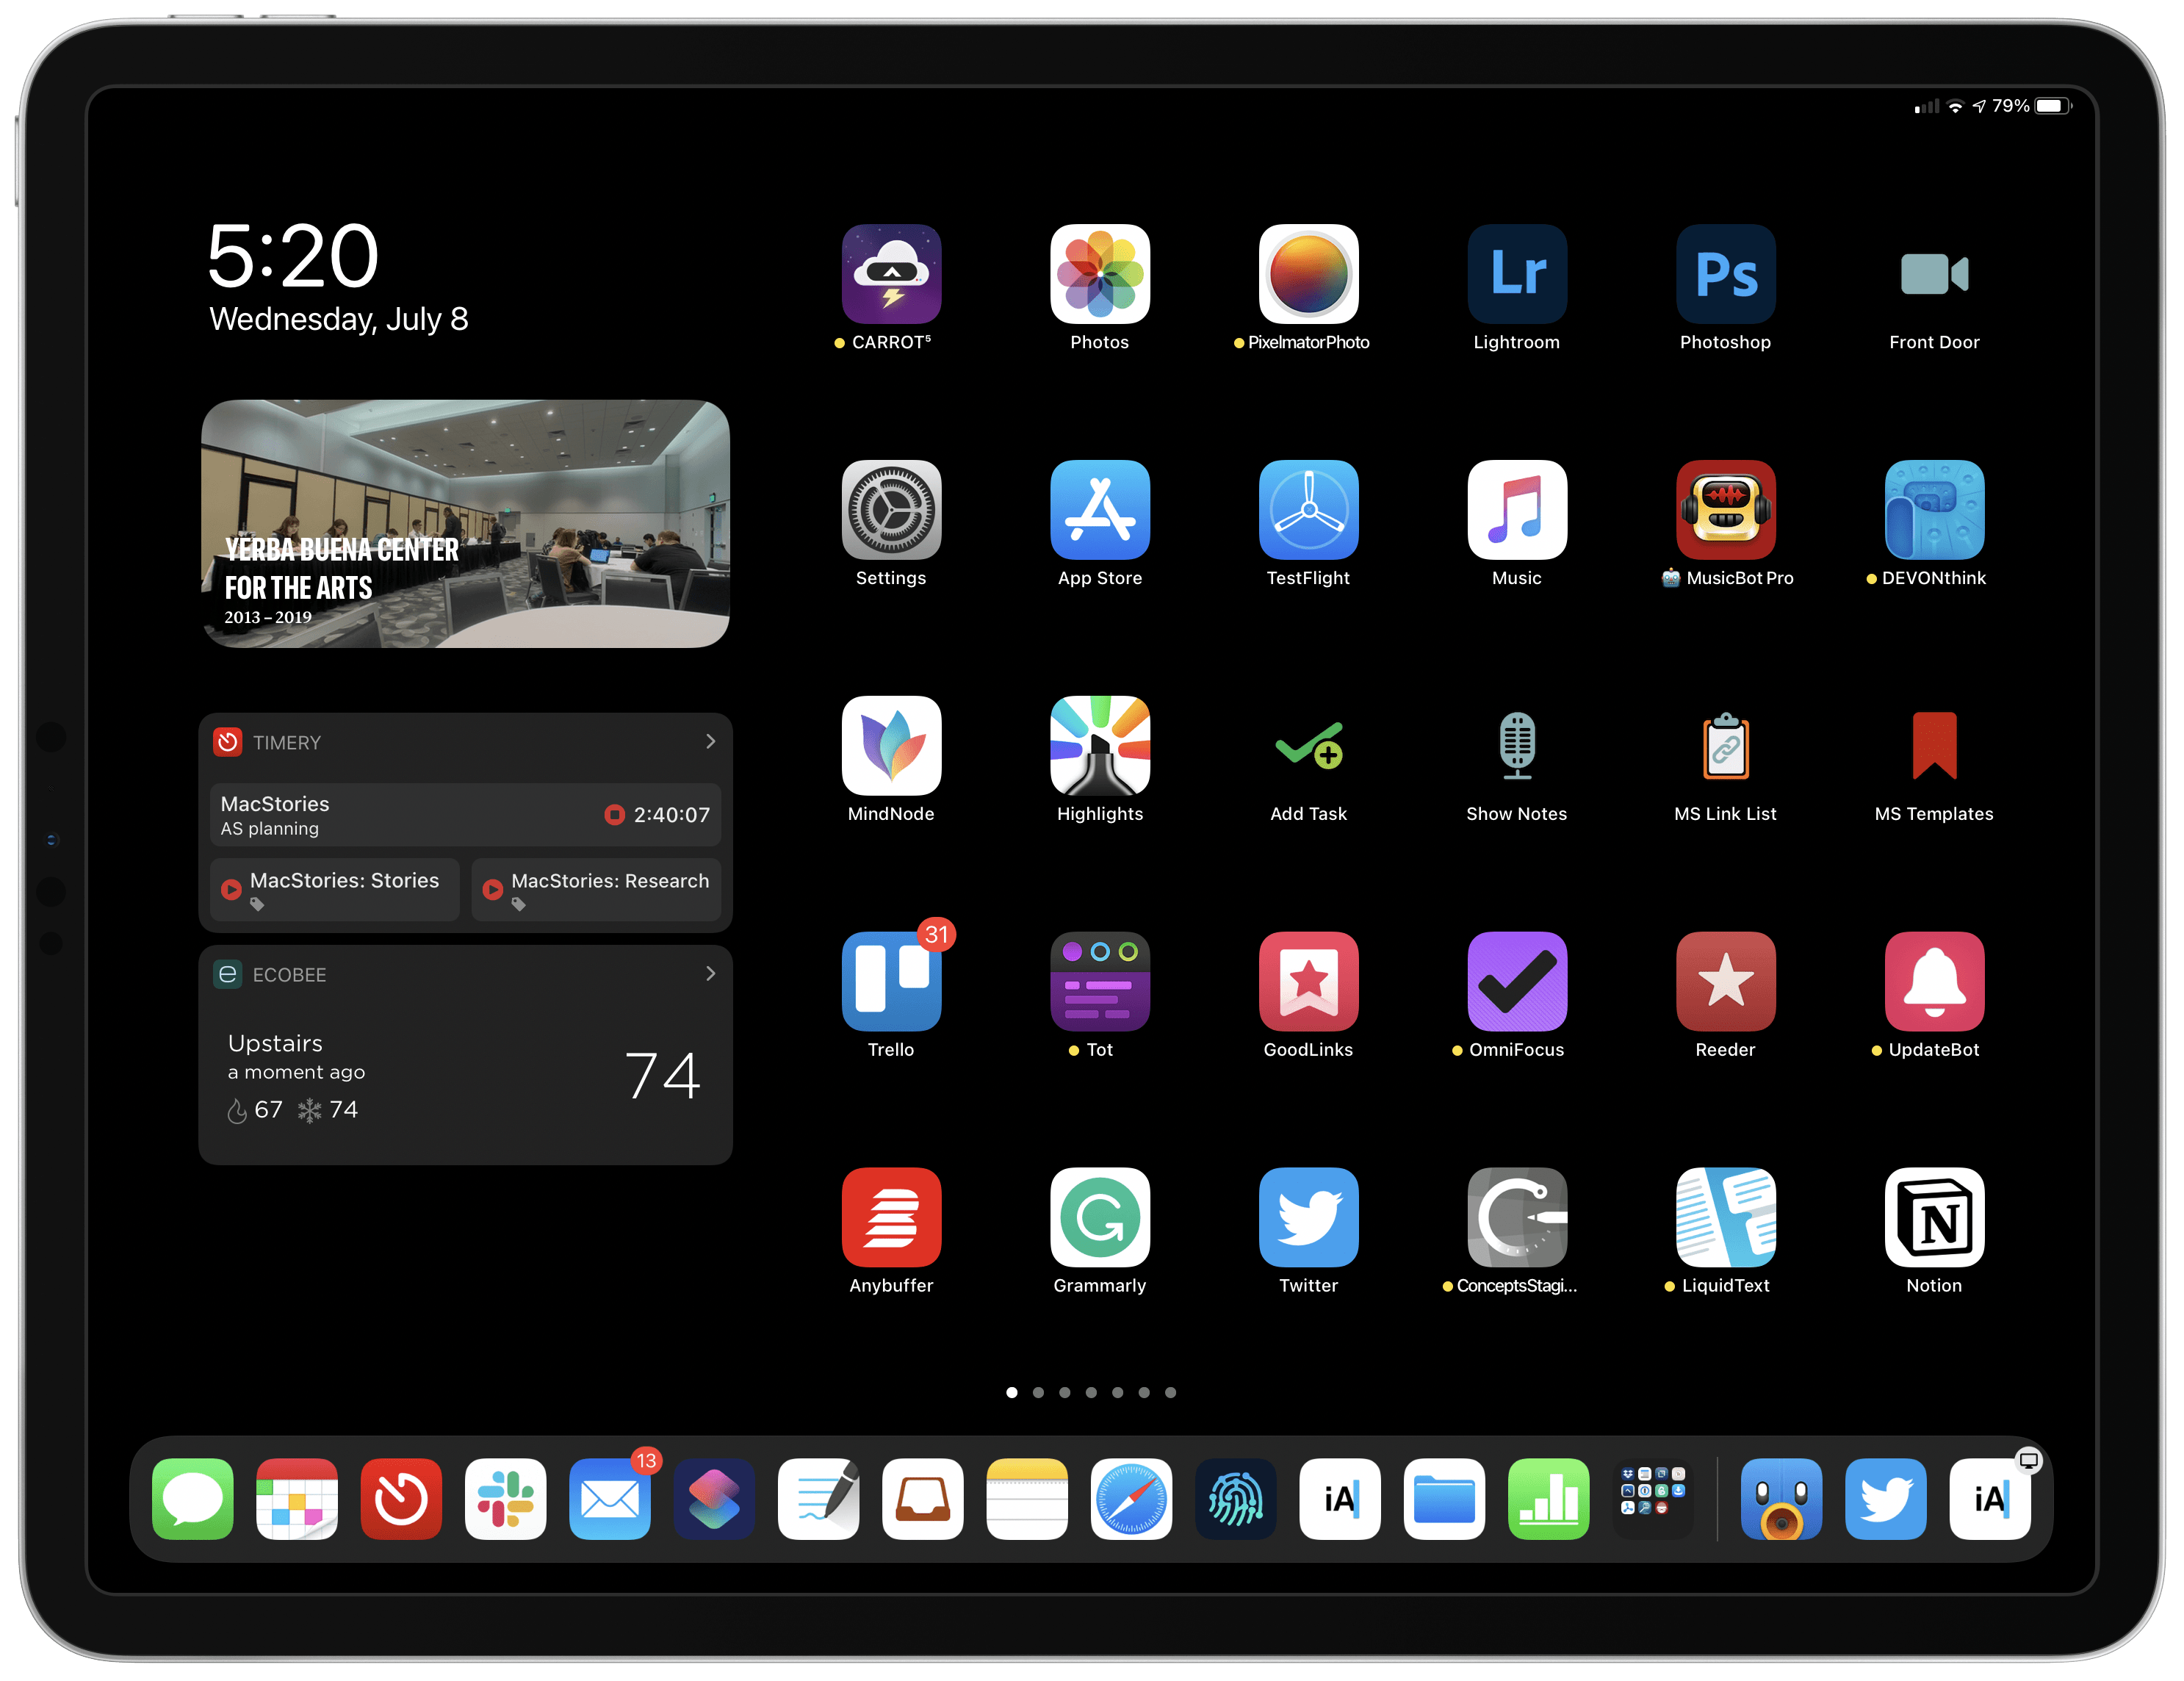 Relegating widgets to the iPad's Today view has limited their utility.